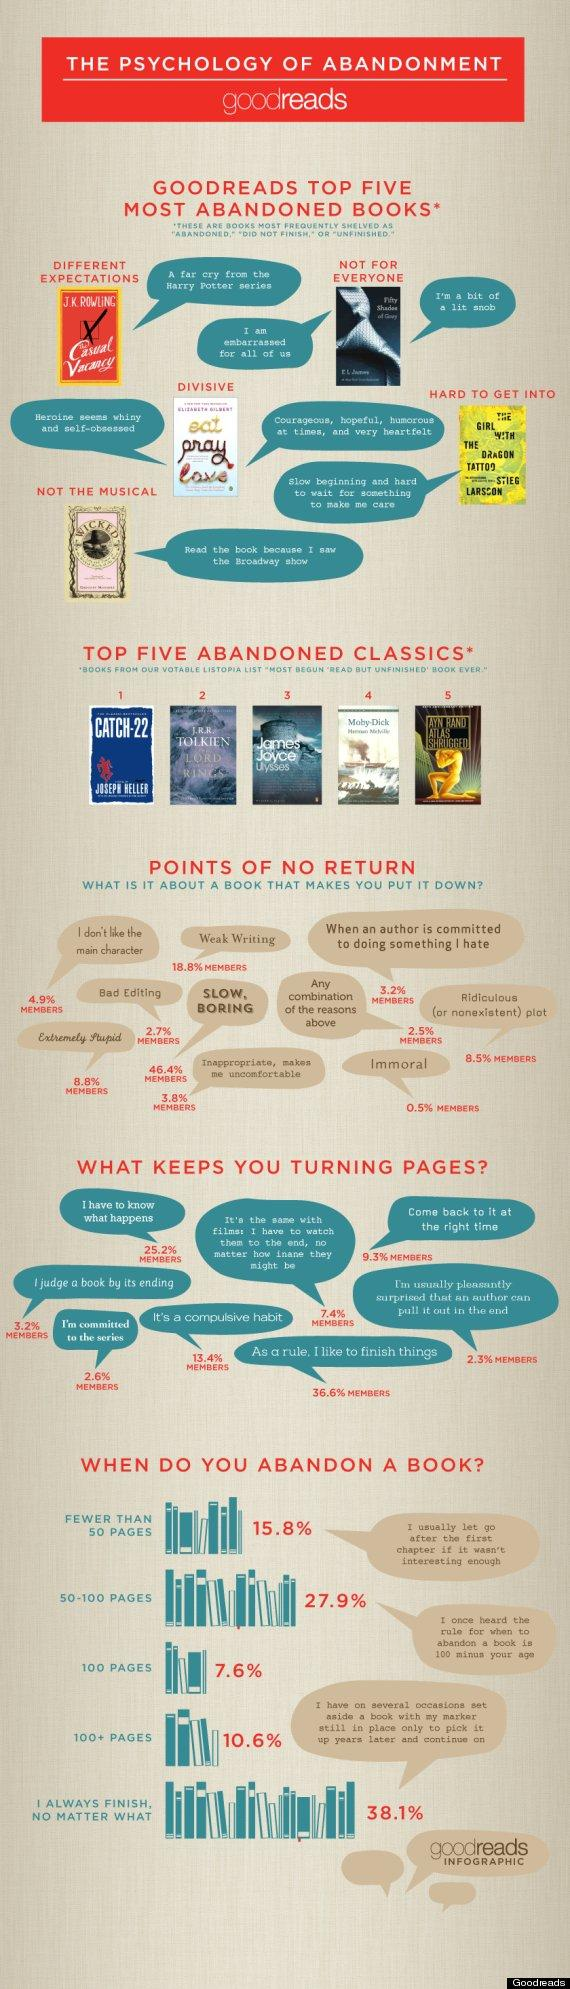 Which Books Do Readers Find Hard To Finish